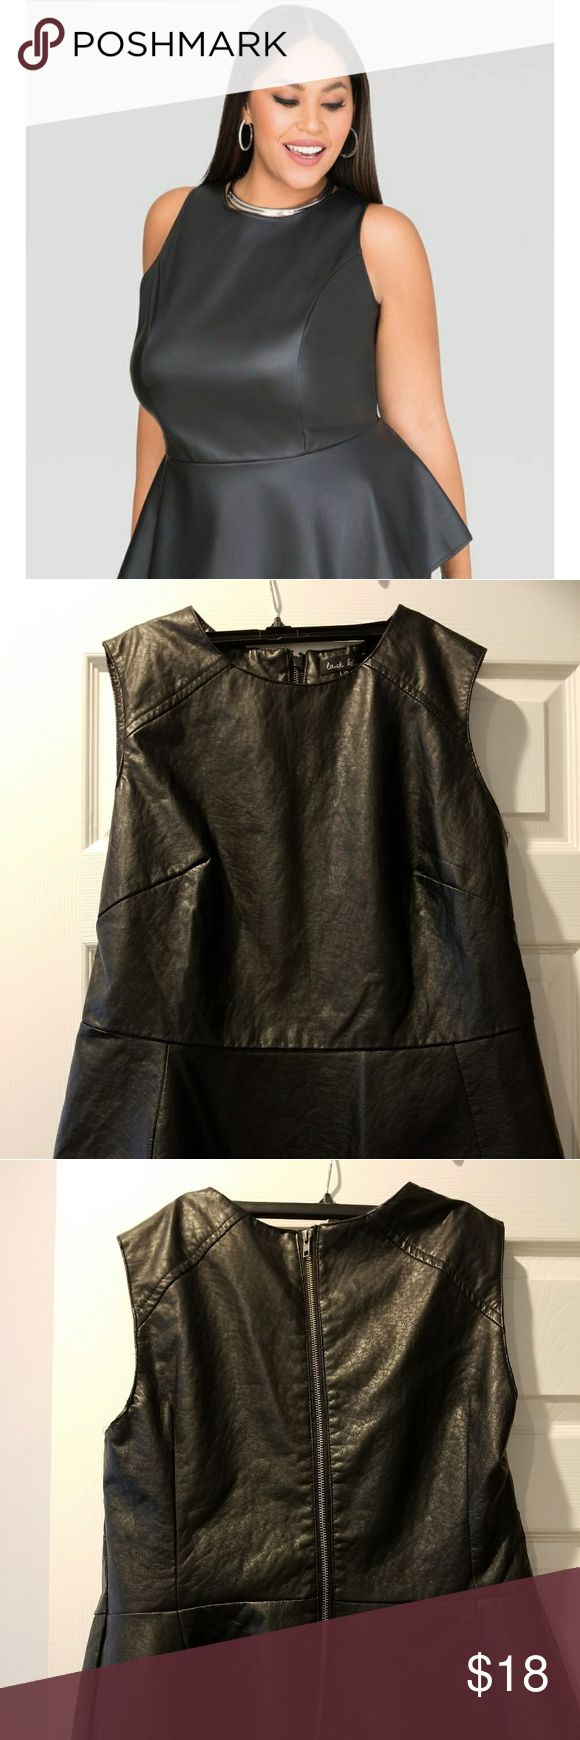 Peplum top Stunning faux leather peplum top, great with jeans and heels. last kiss Tops